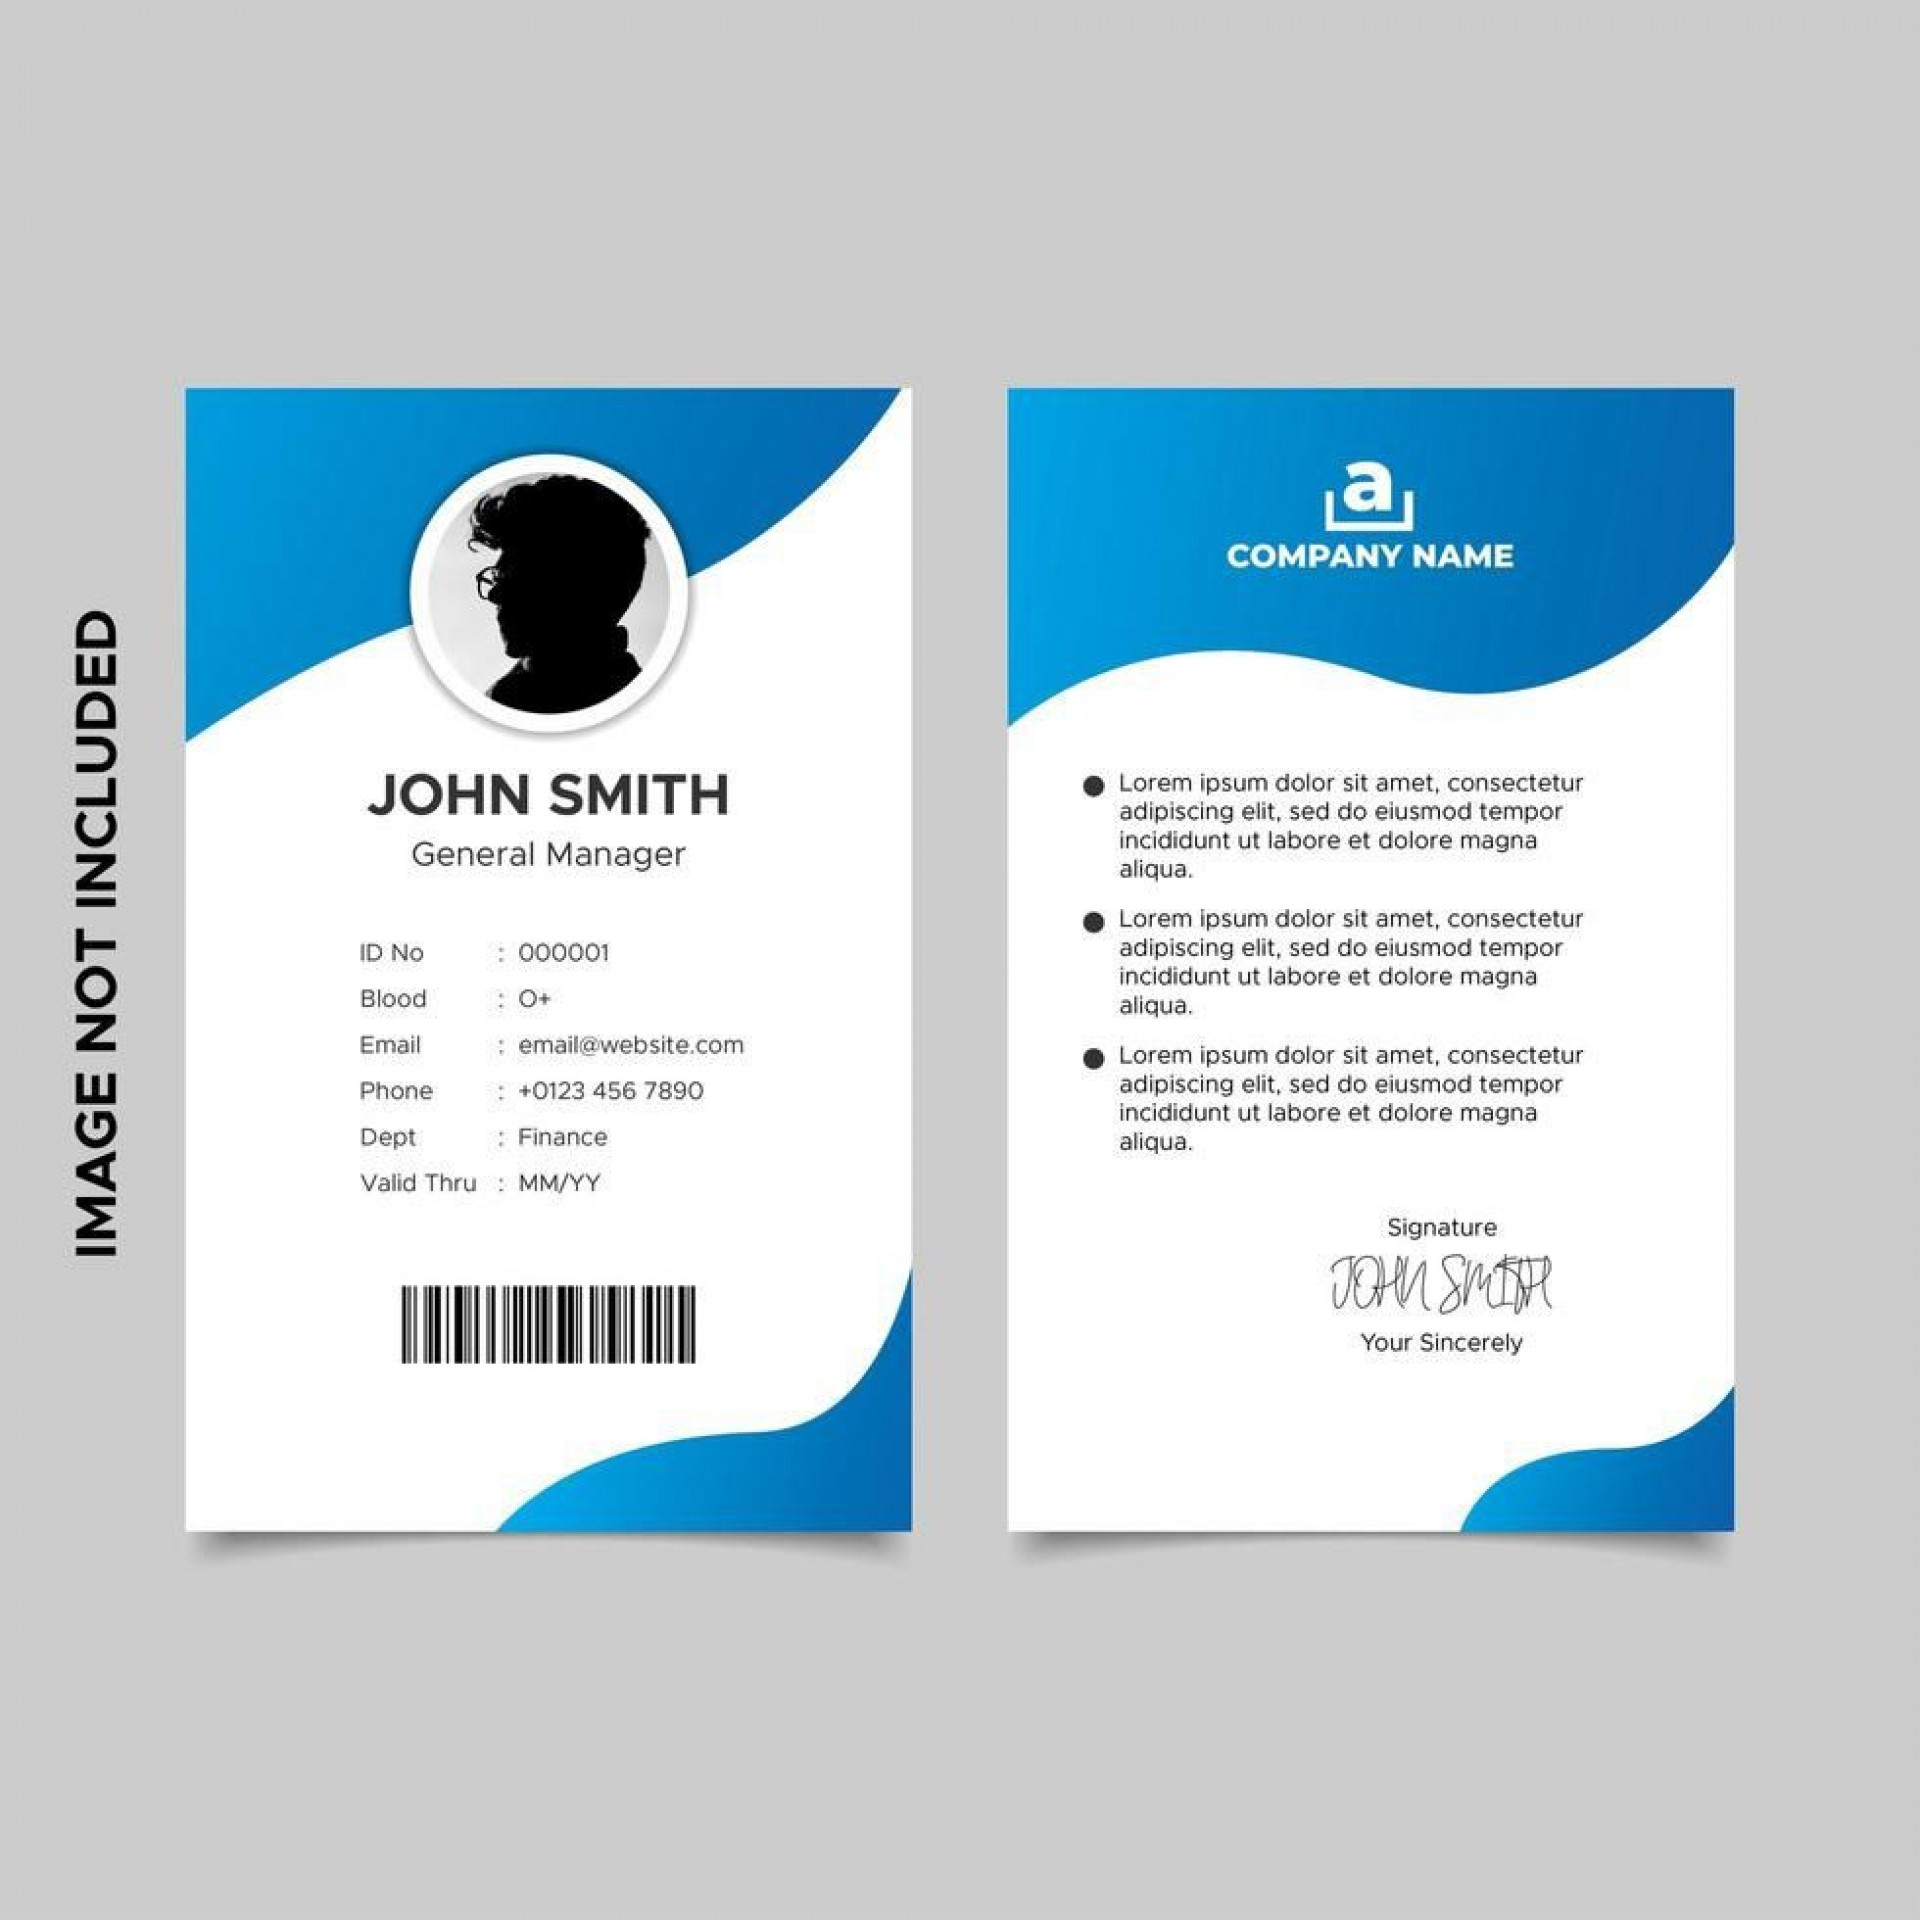 008 Unique Id Card Template Free Download Concept  Design Photoshop Identity Student Word1920